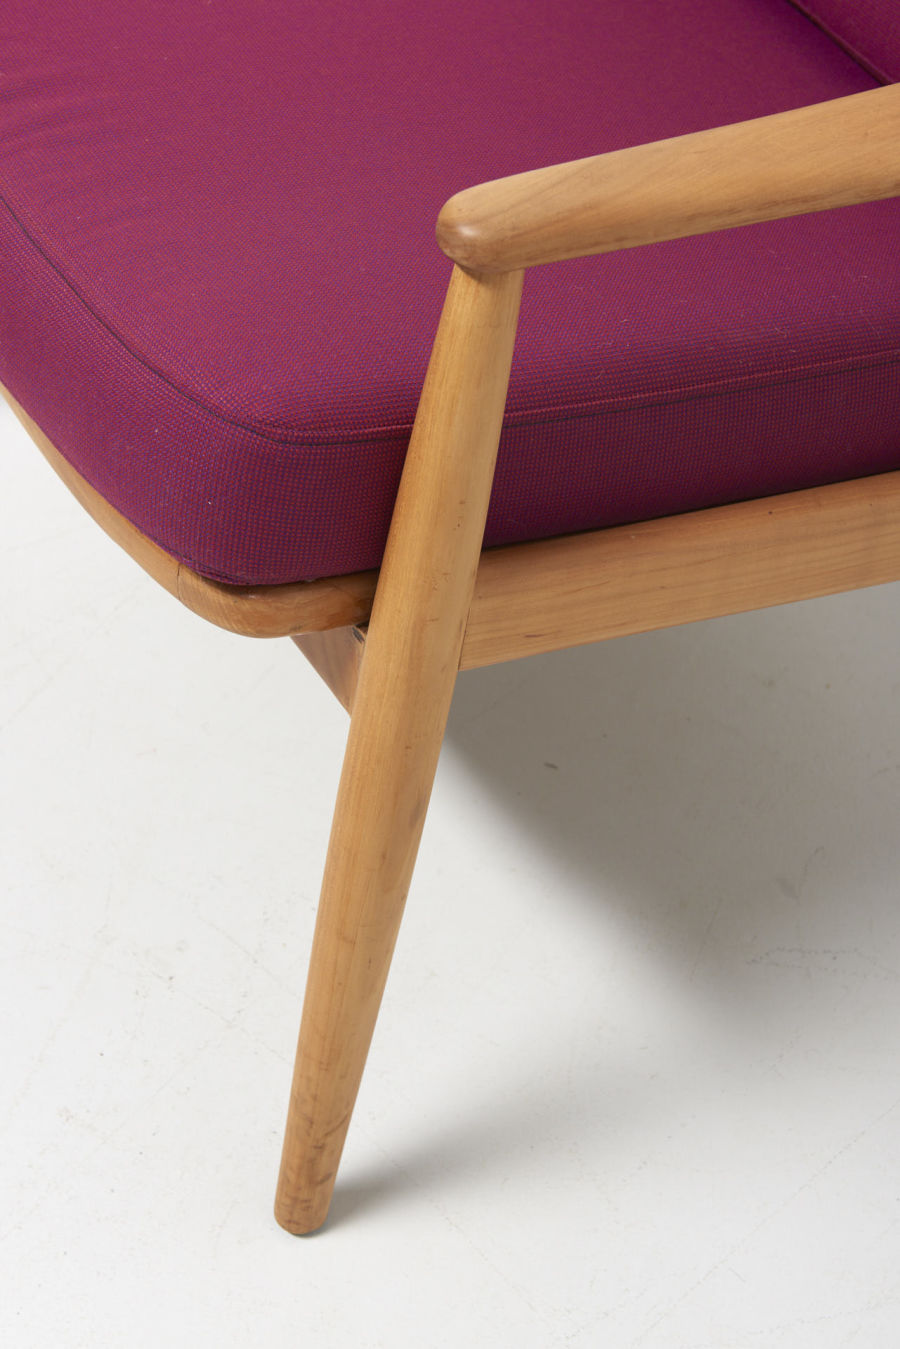 modestfurniture-vintage-2179-lohmeyer-easy-chair-wilkhahn09